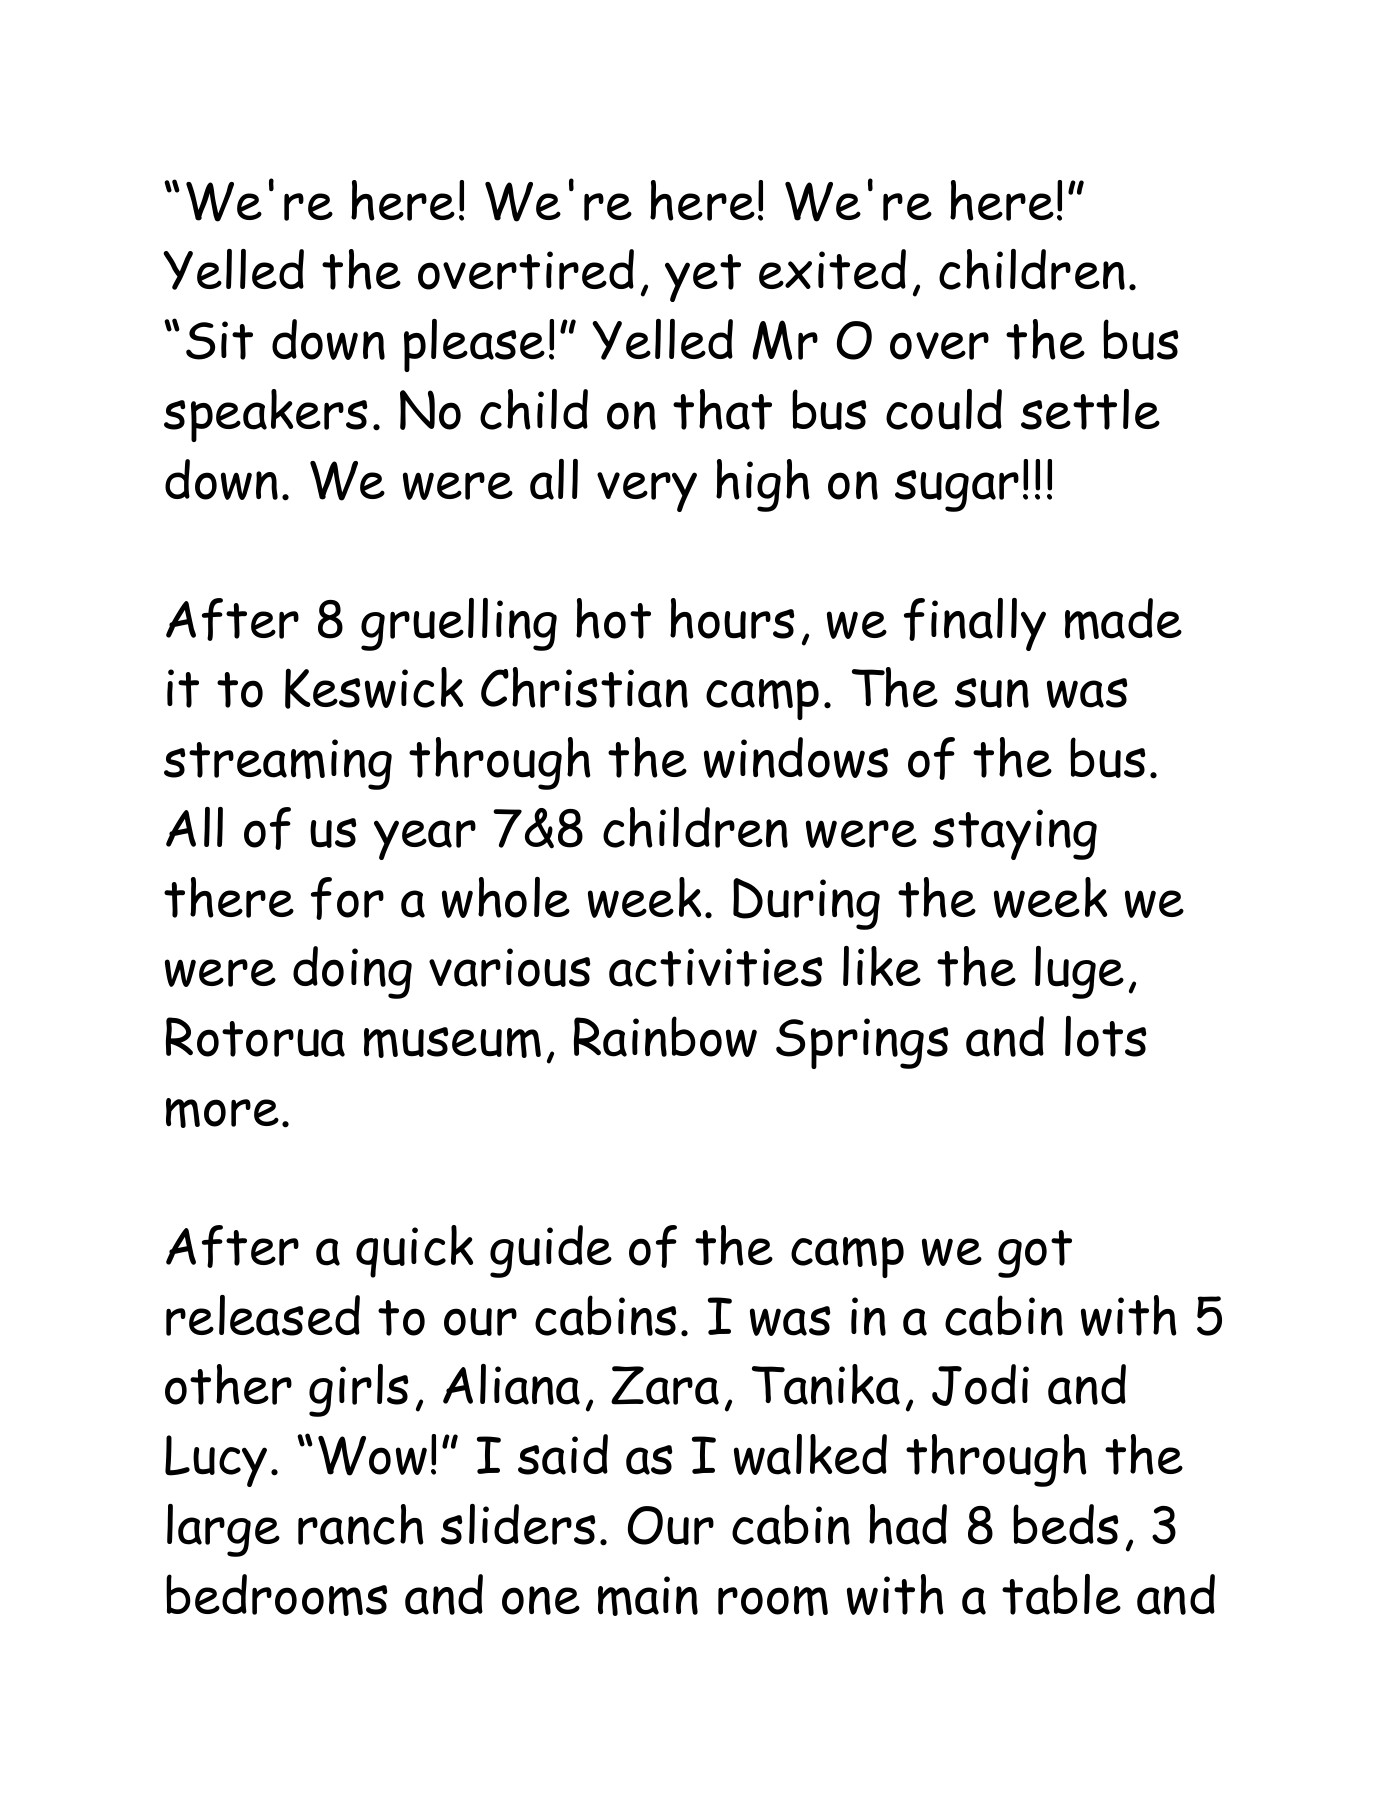 camp recount Pages 1 - 8 - Text Version | AnyFlip